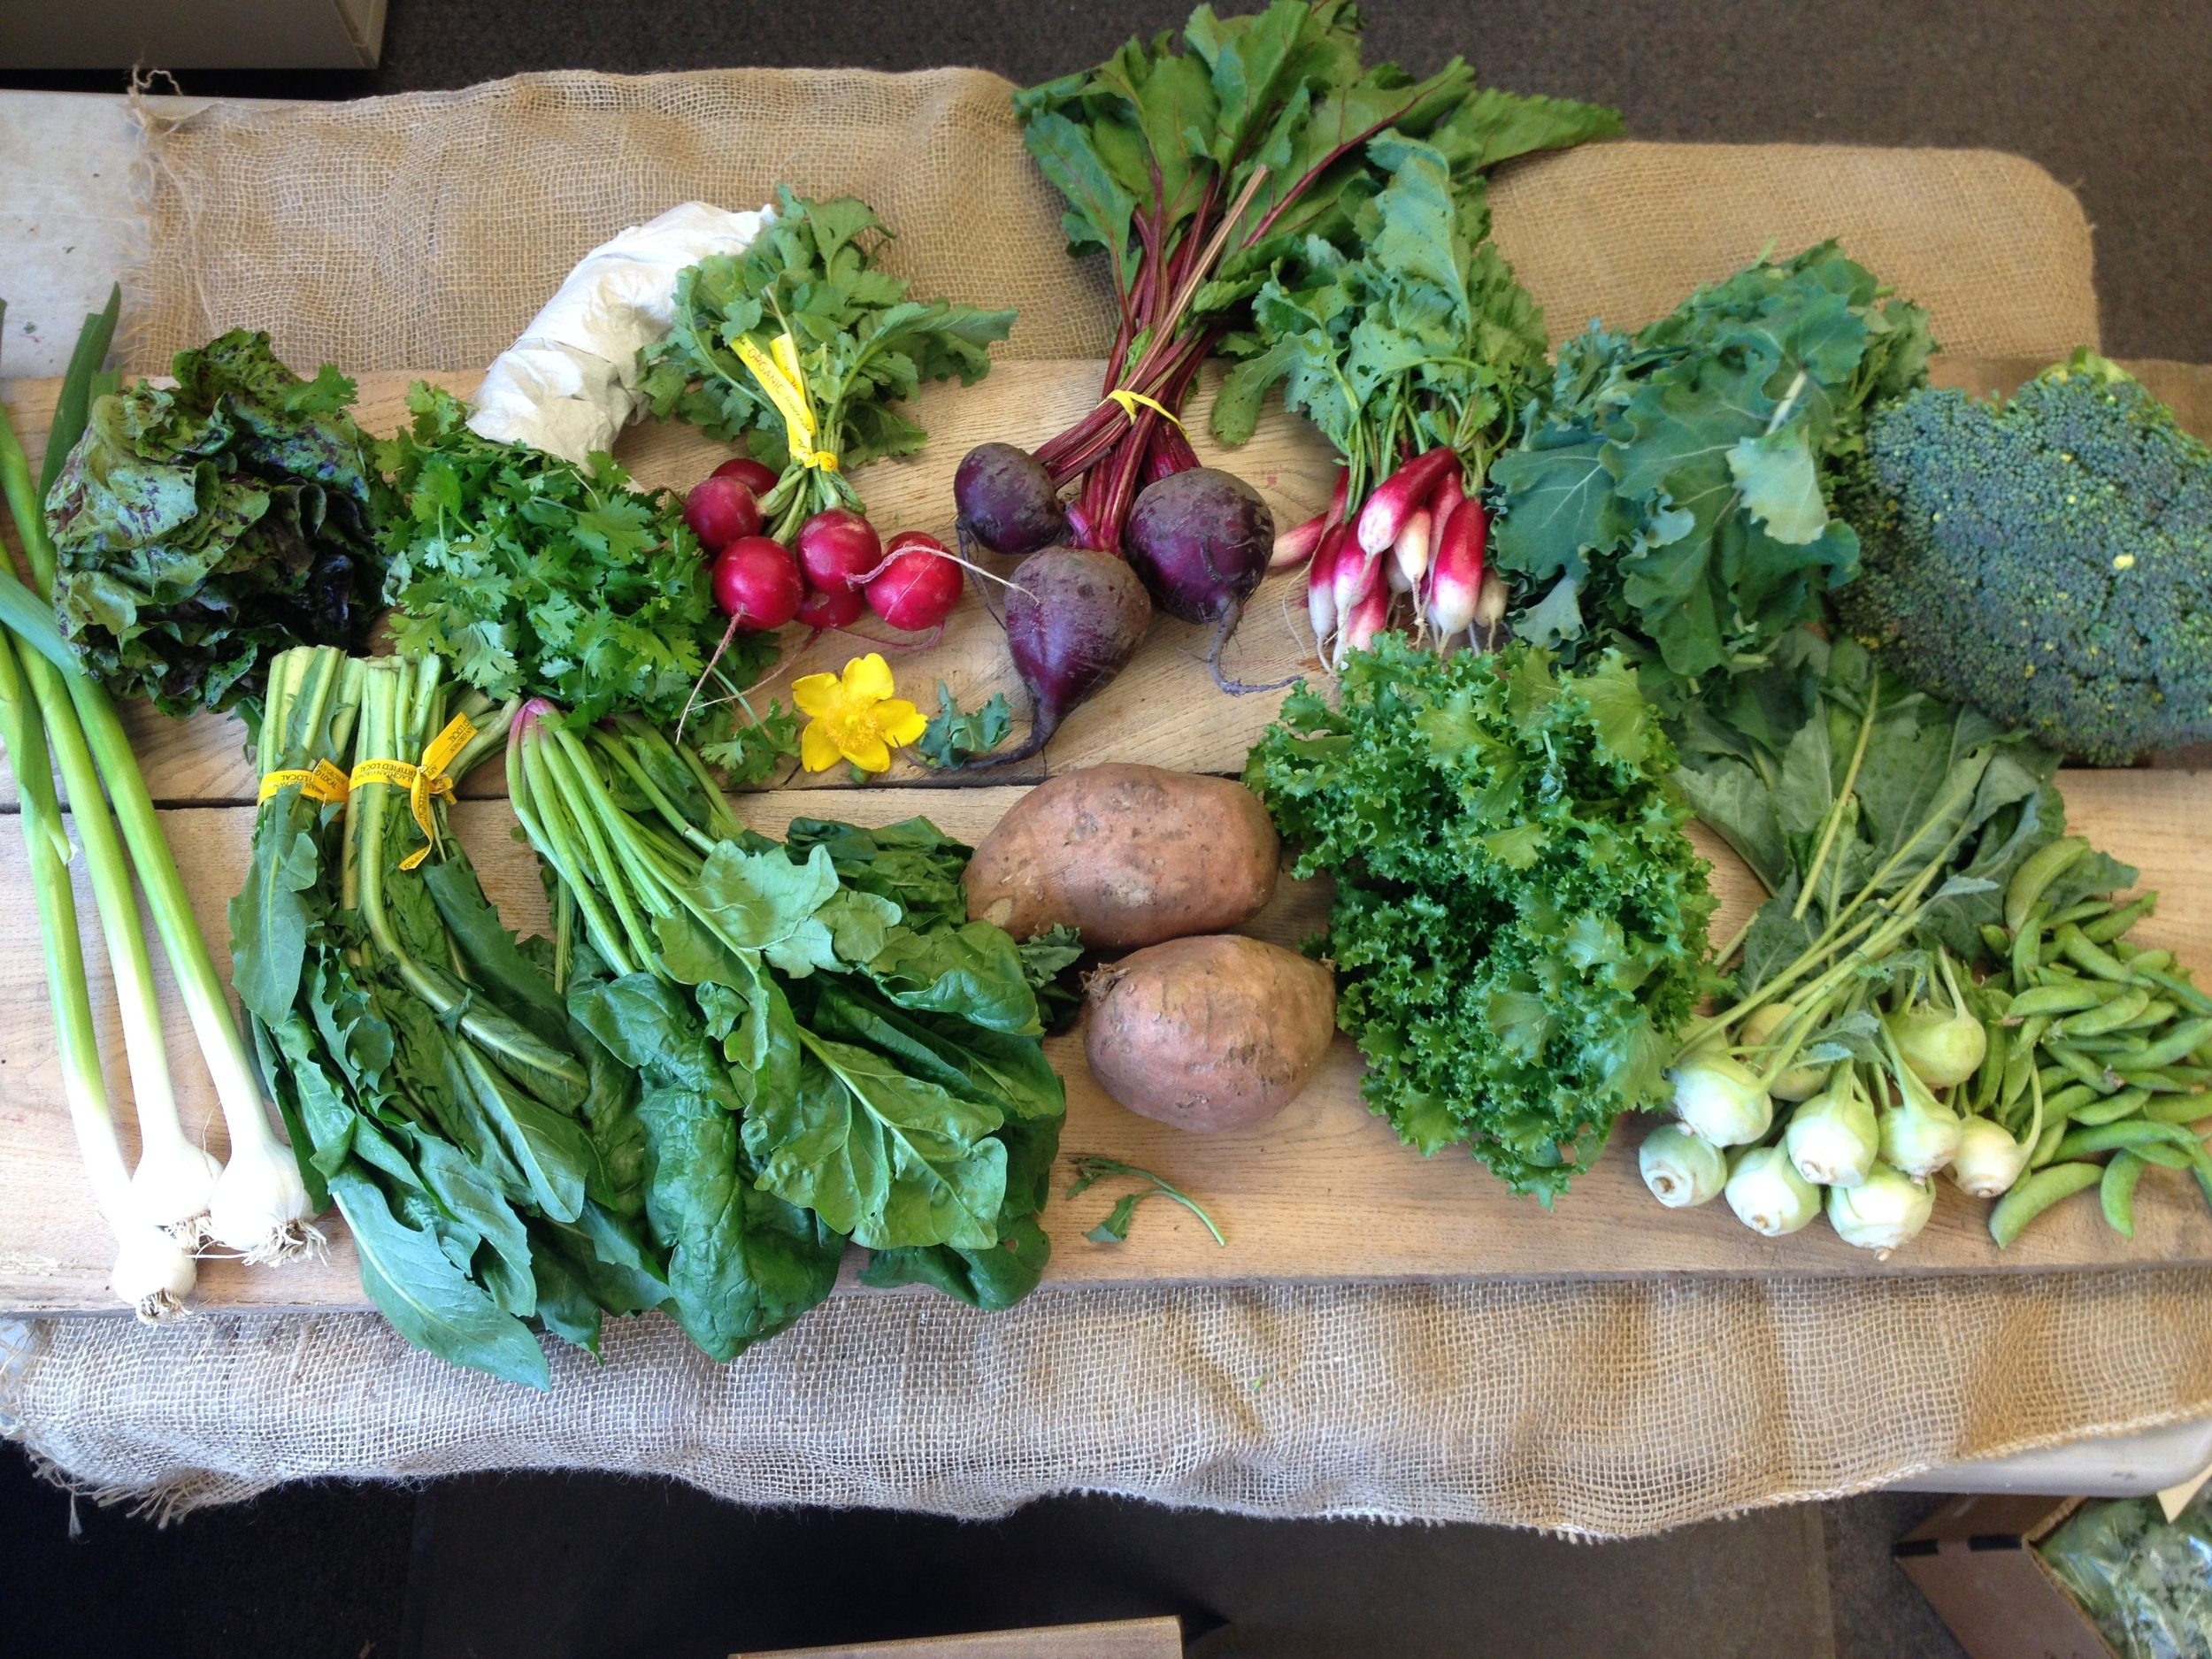 Spice of Life family- Lettuce, herbs, red radishes, beets, french breakfast radishes, kale, broccoli, green garlic, dandelion greens, spinach, sweet potatoes, endive, grab bag item (Kohlrabi and peas shown. Collards also available)